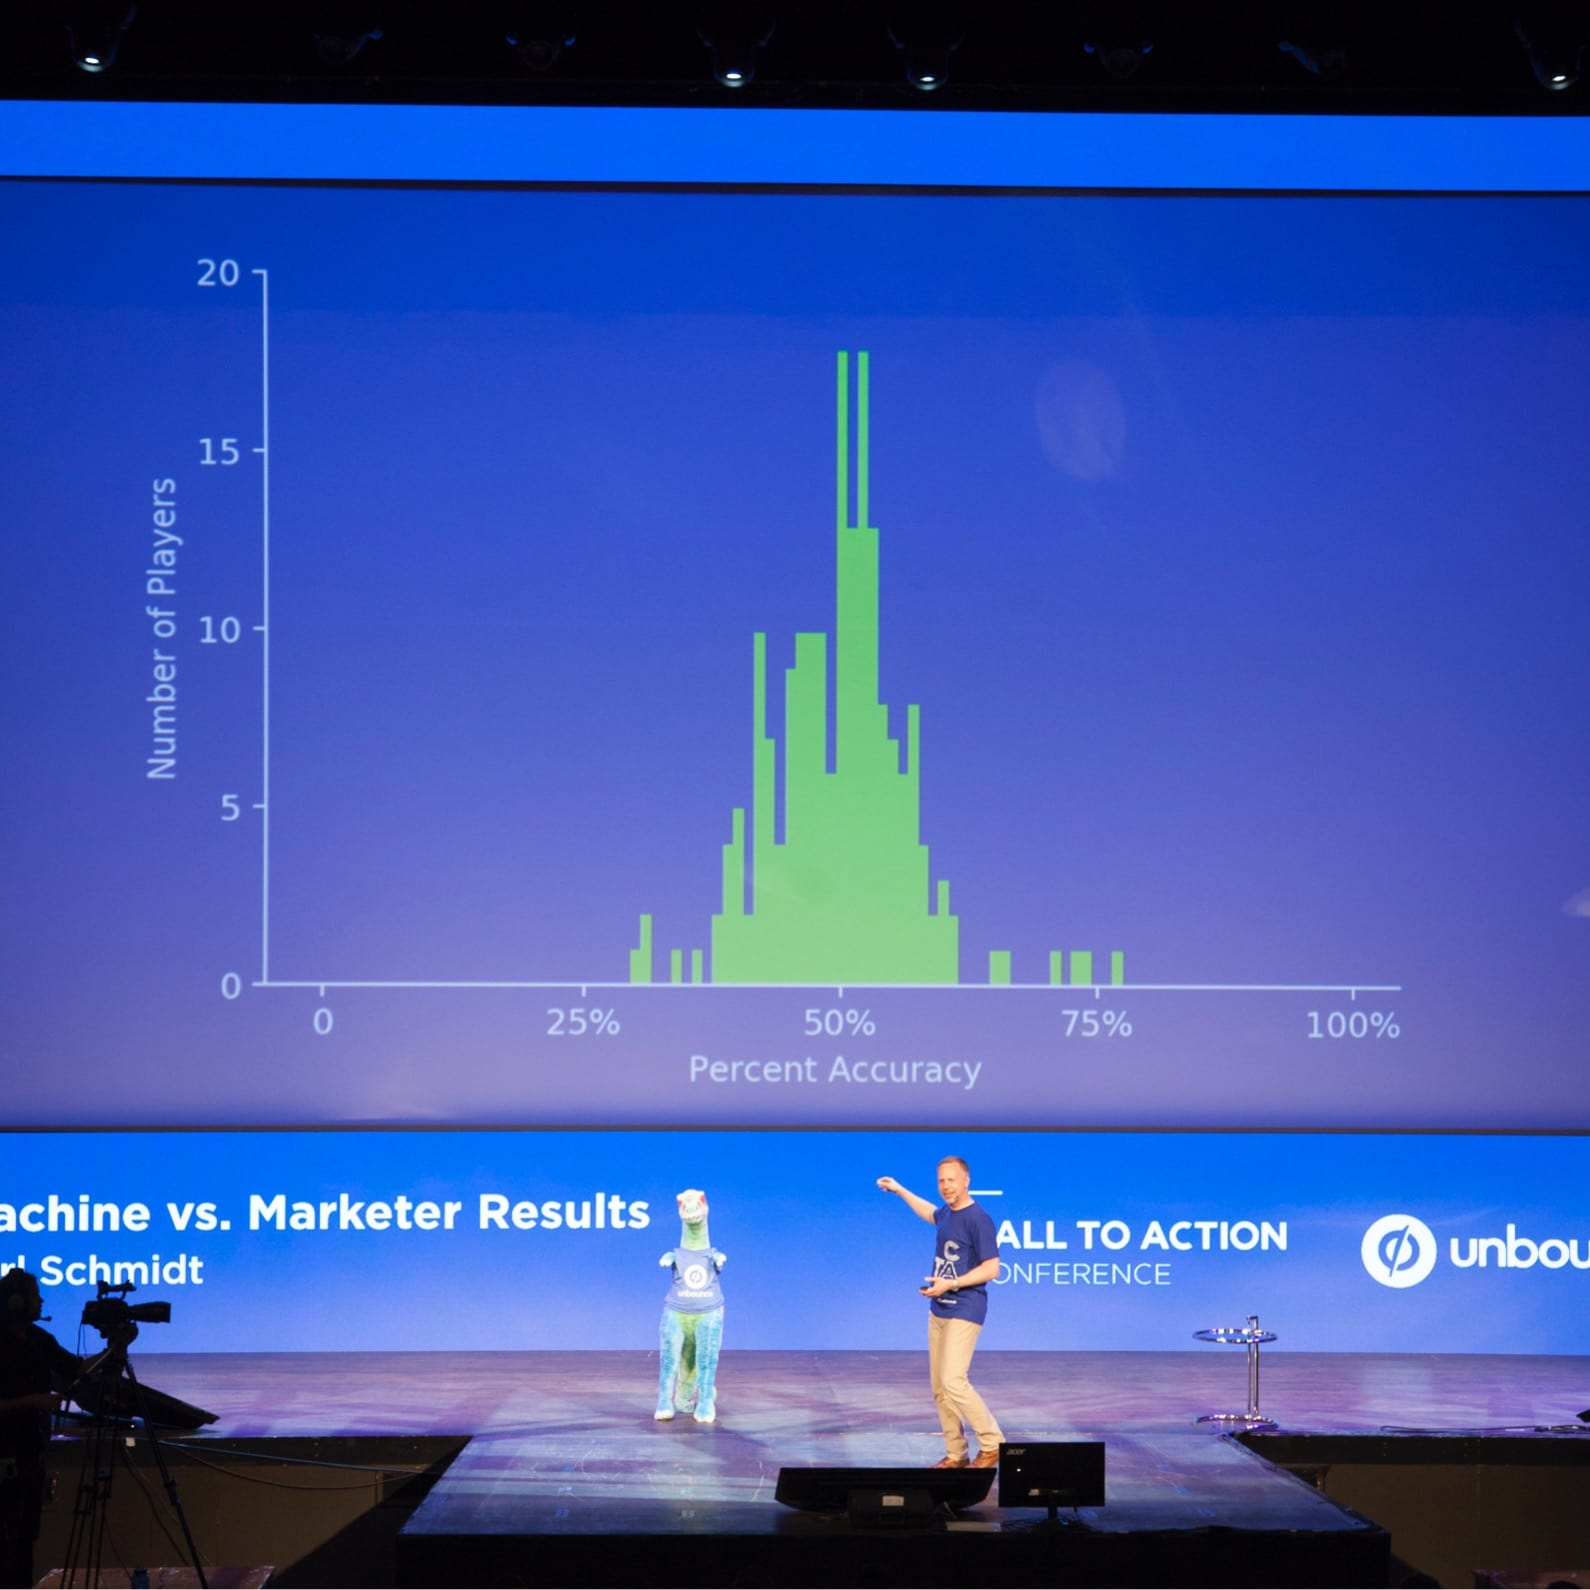 machine vs marketer results cta2017